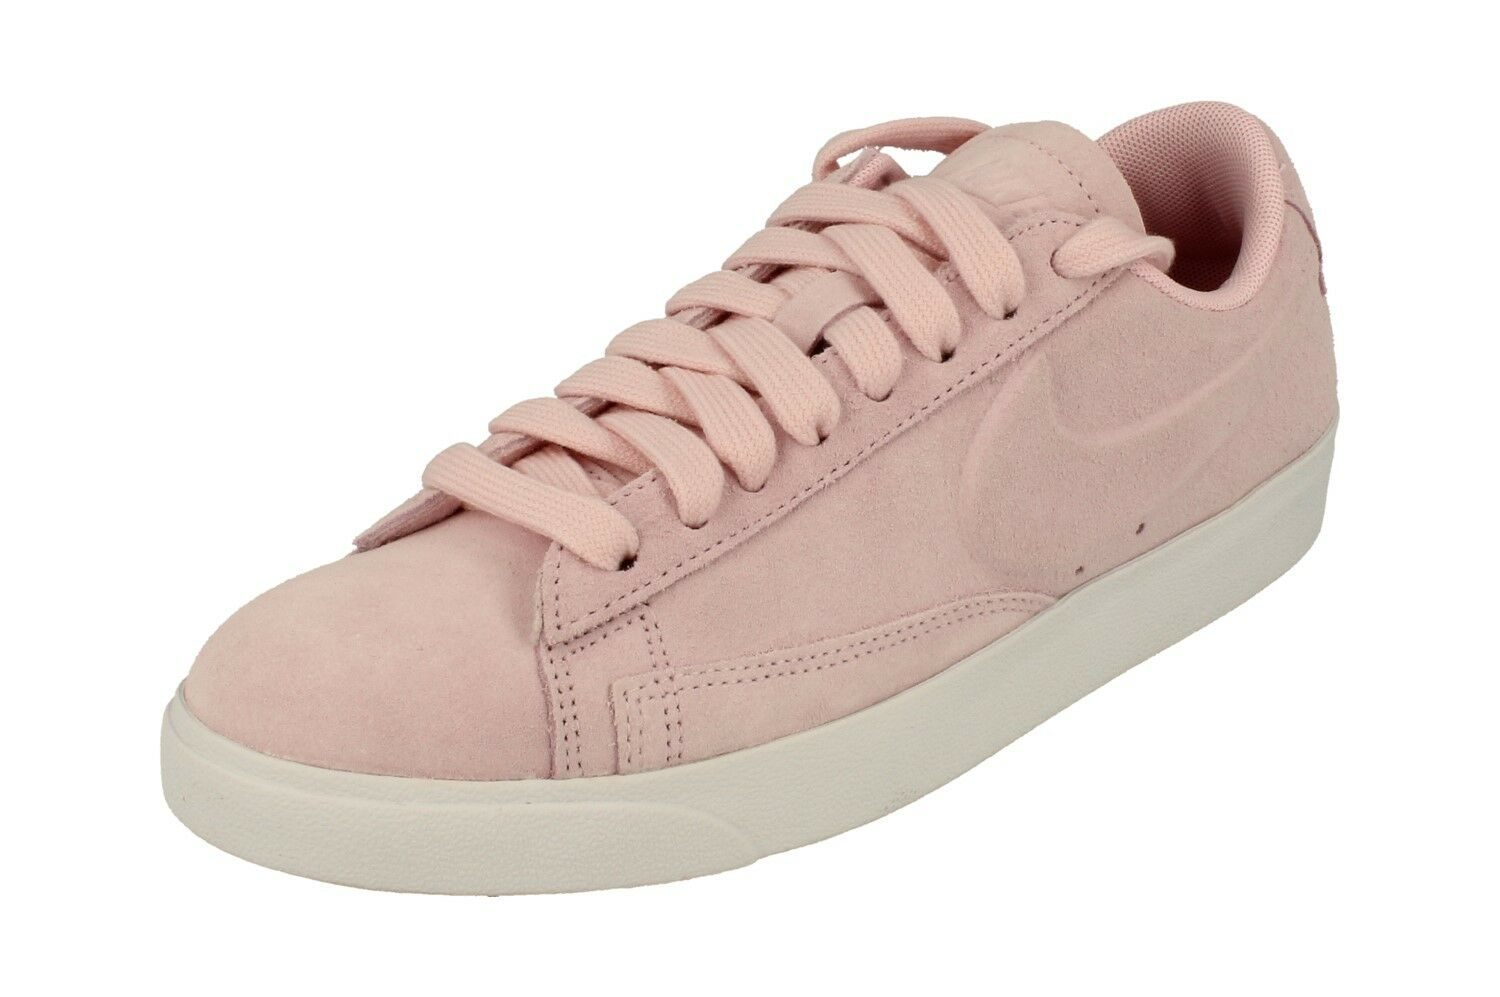 Nike Womens Blazer Low Sd Trainers Aa3962 Sneakers shoes 602